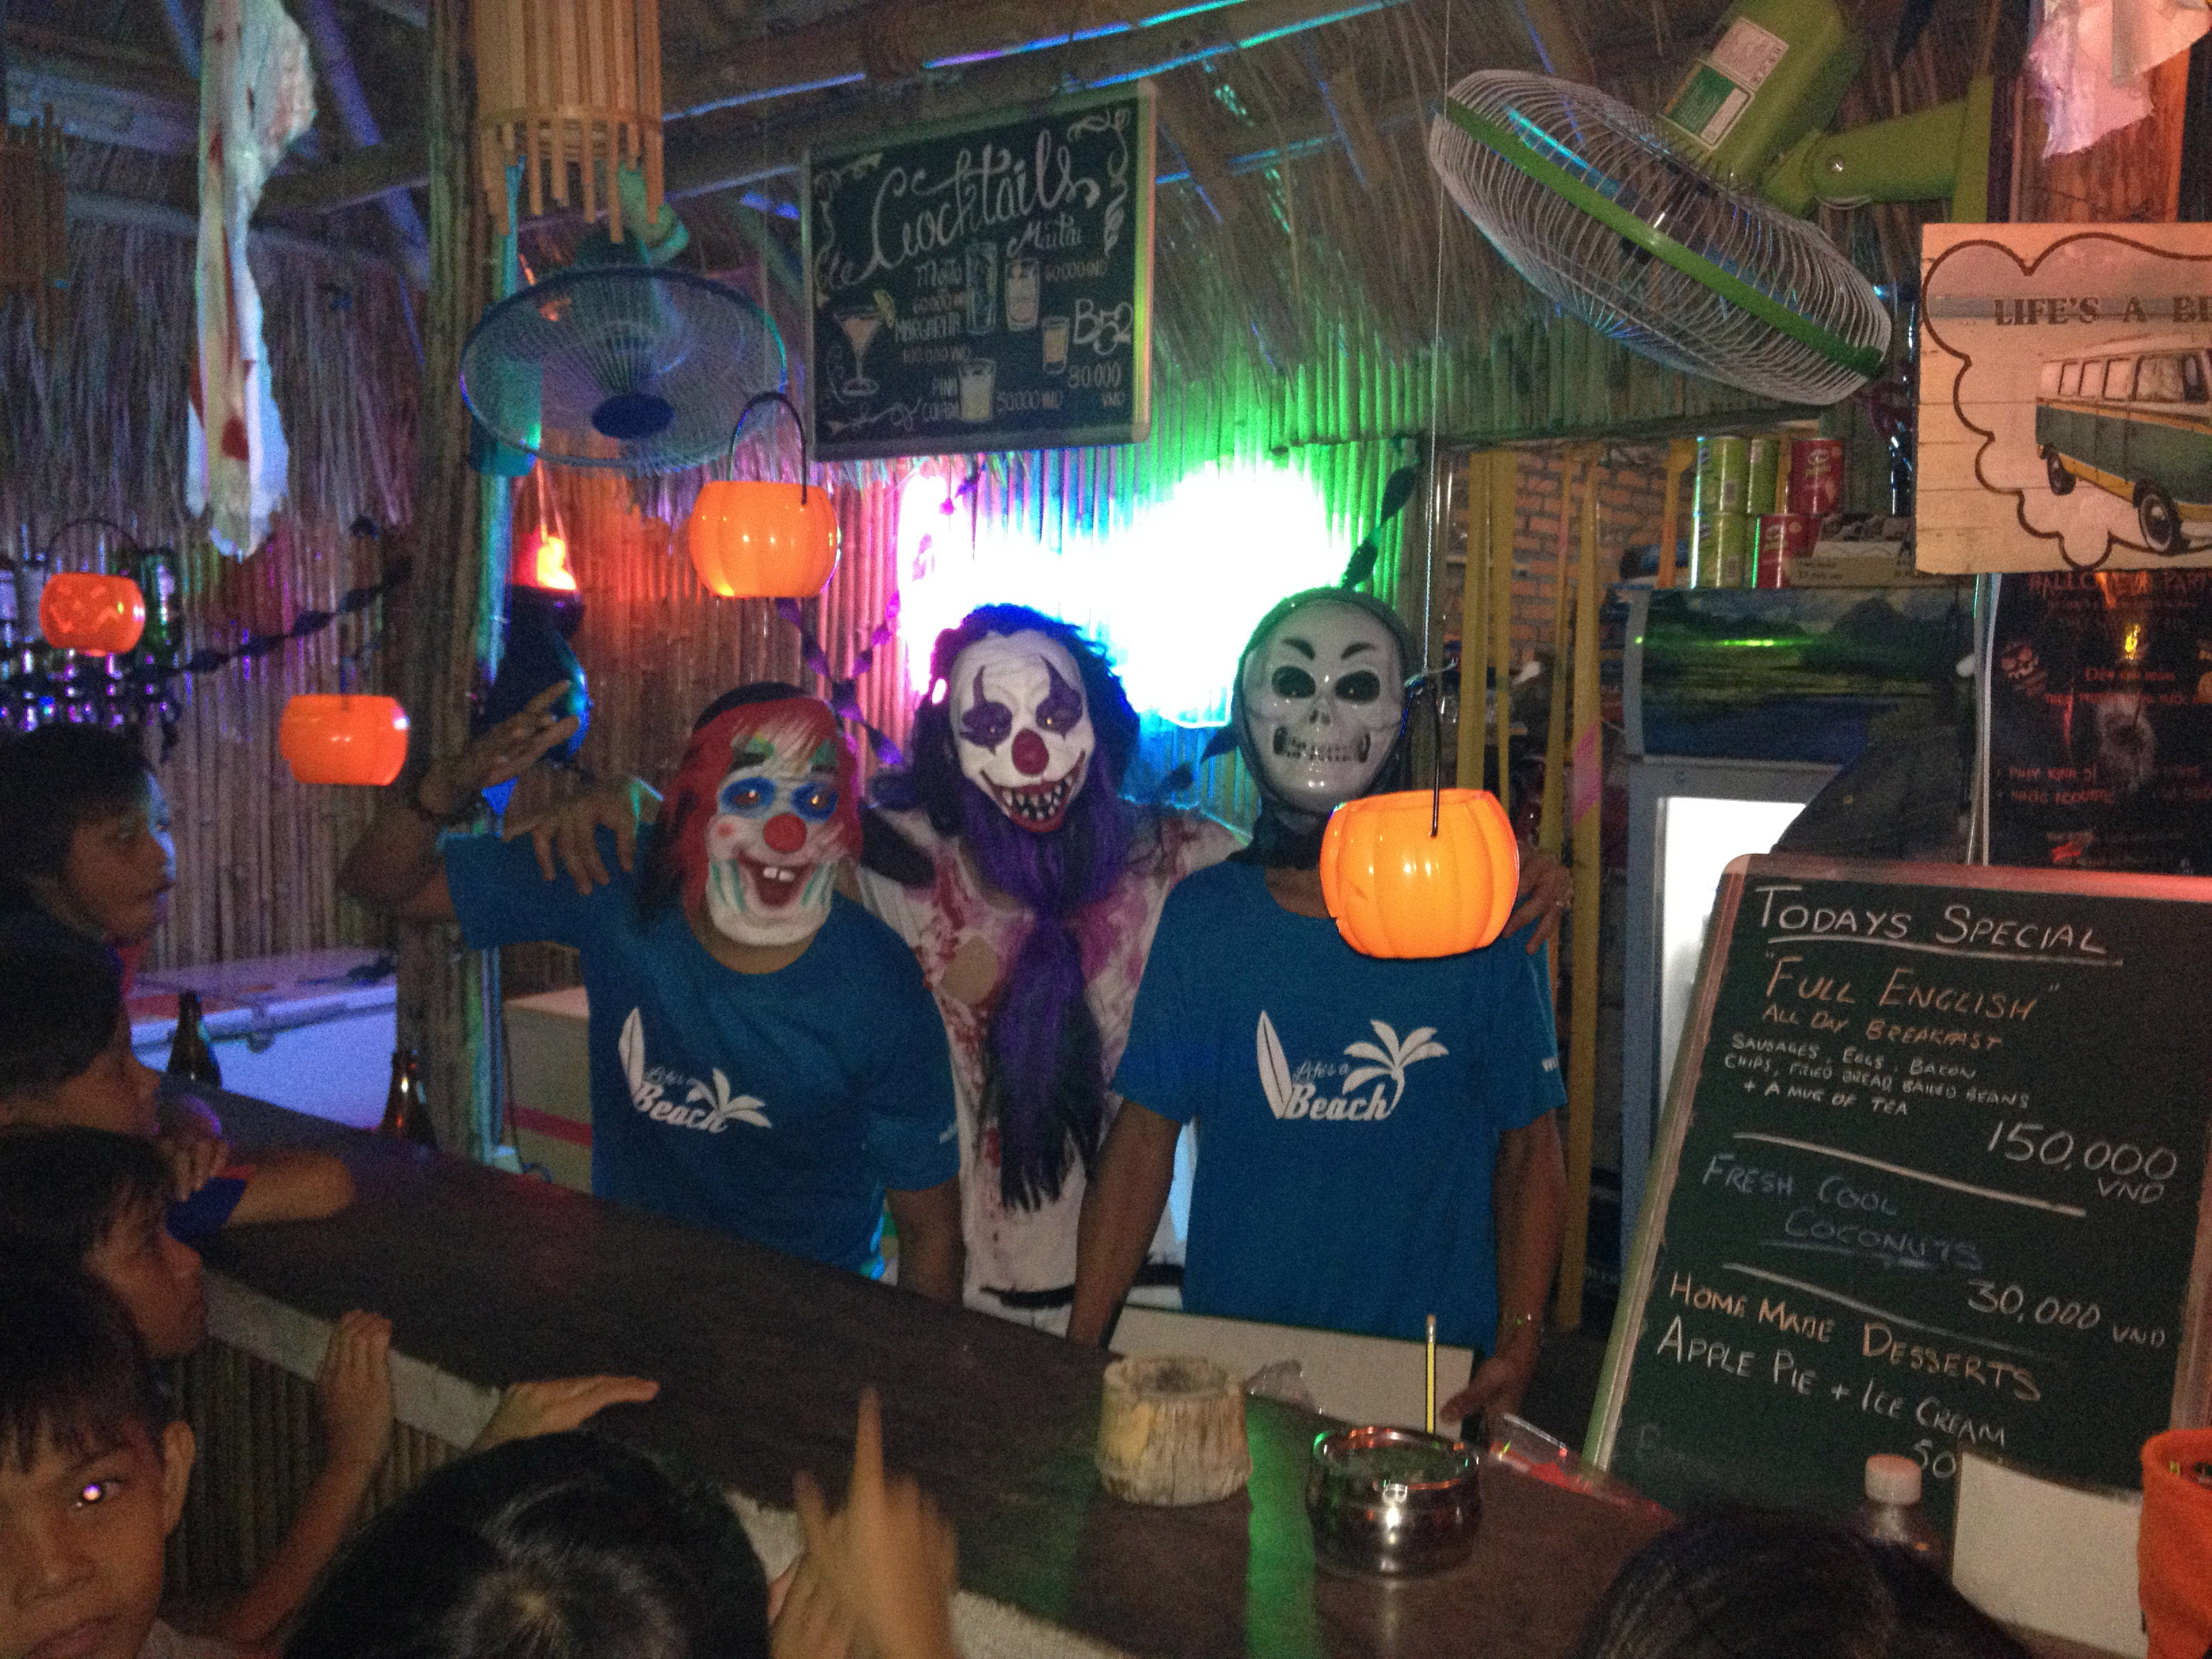 Life's a Beach Vietnam Halloween Party